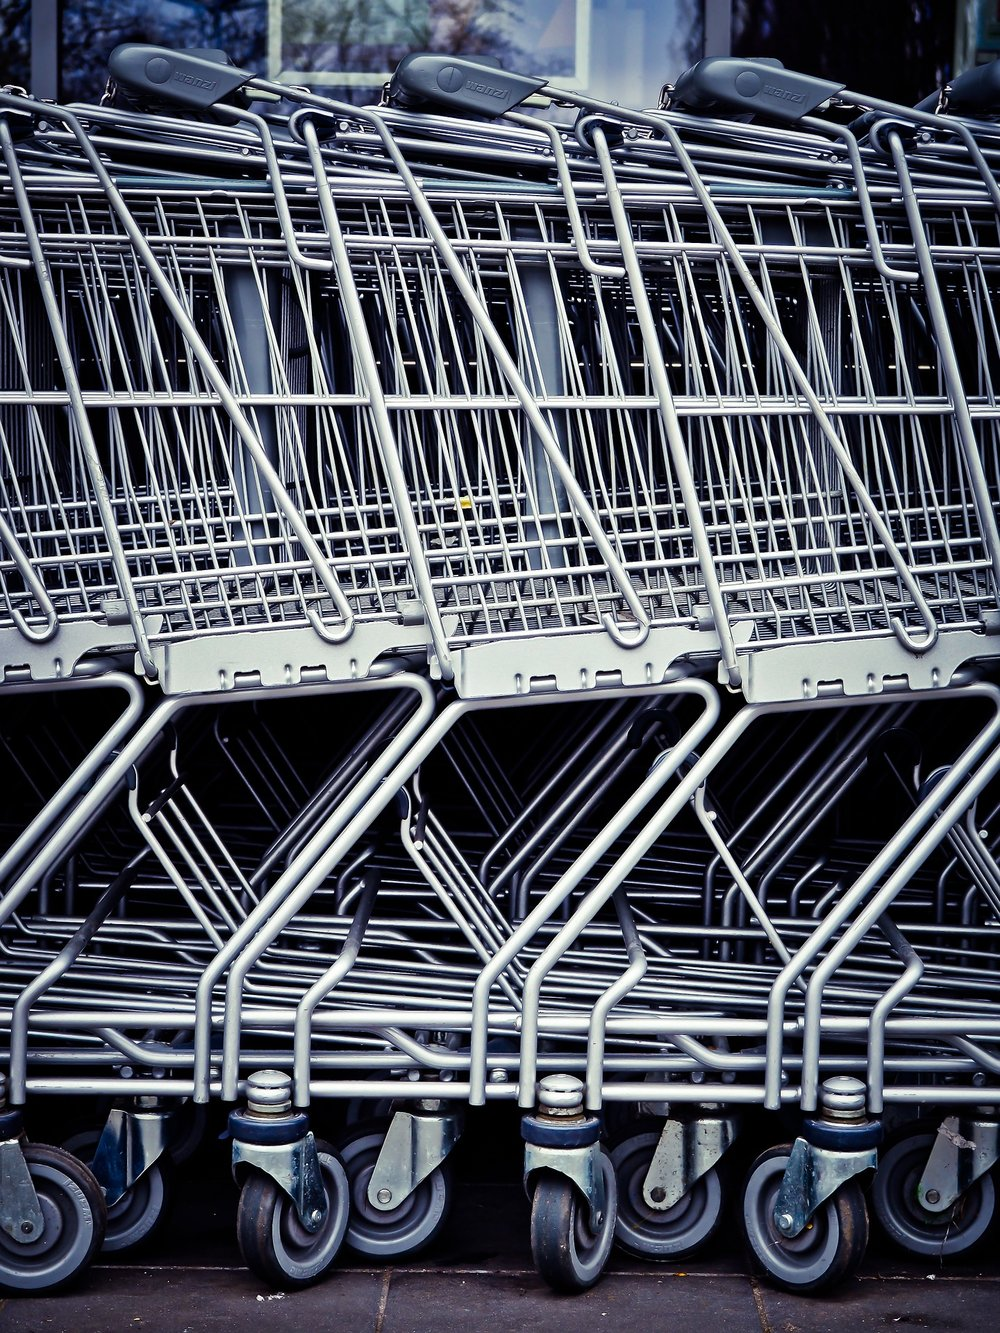 shopping-cart-1275483_1920.jpg